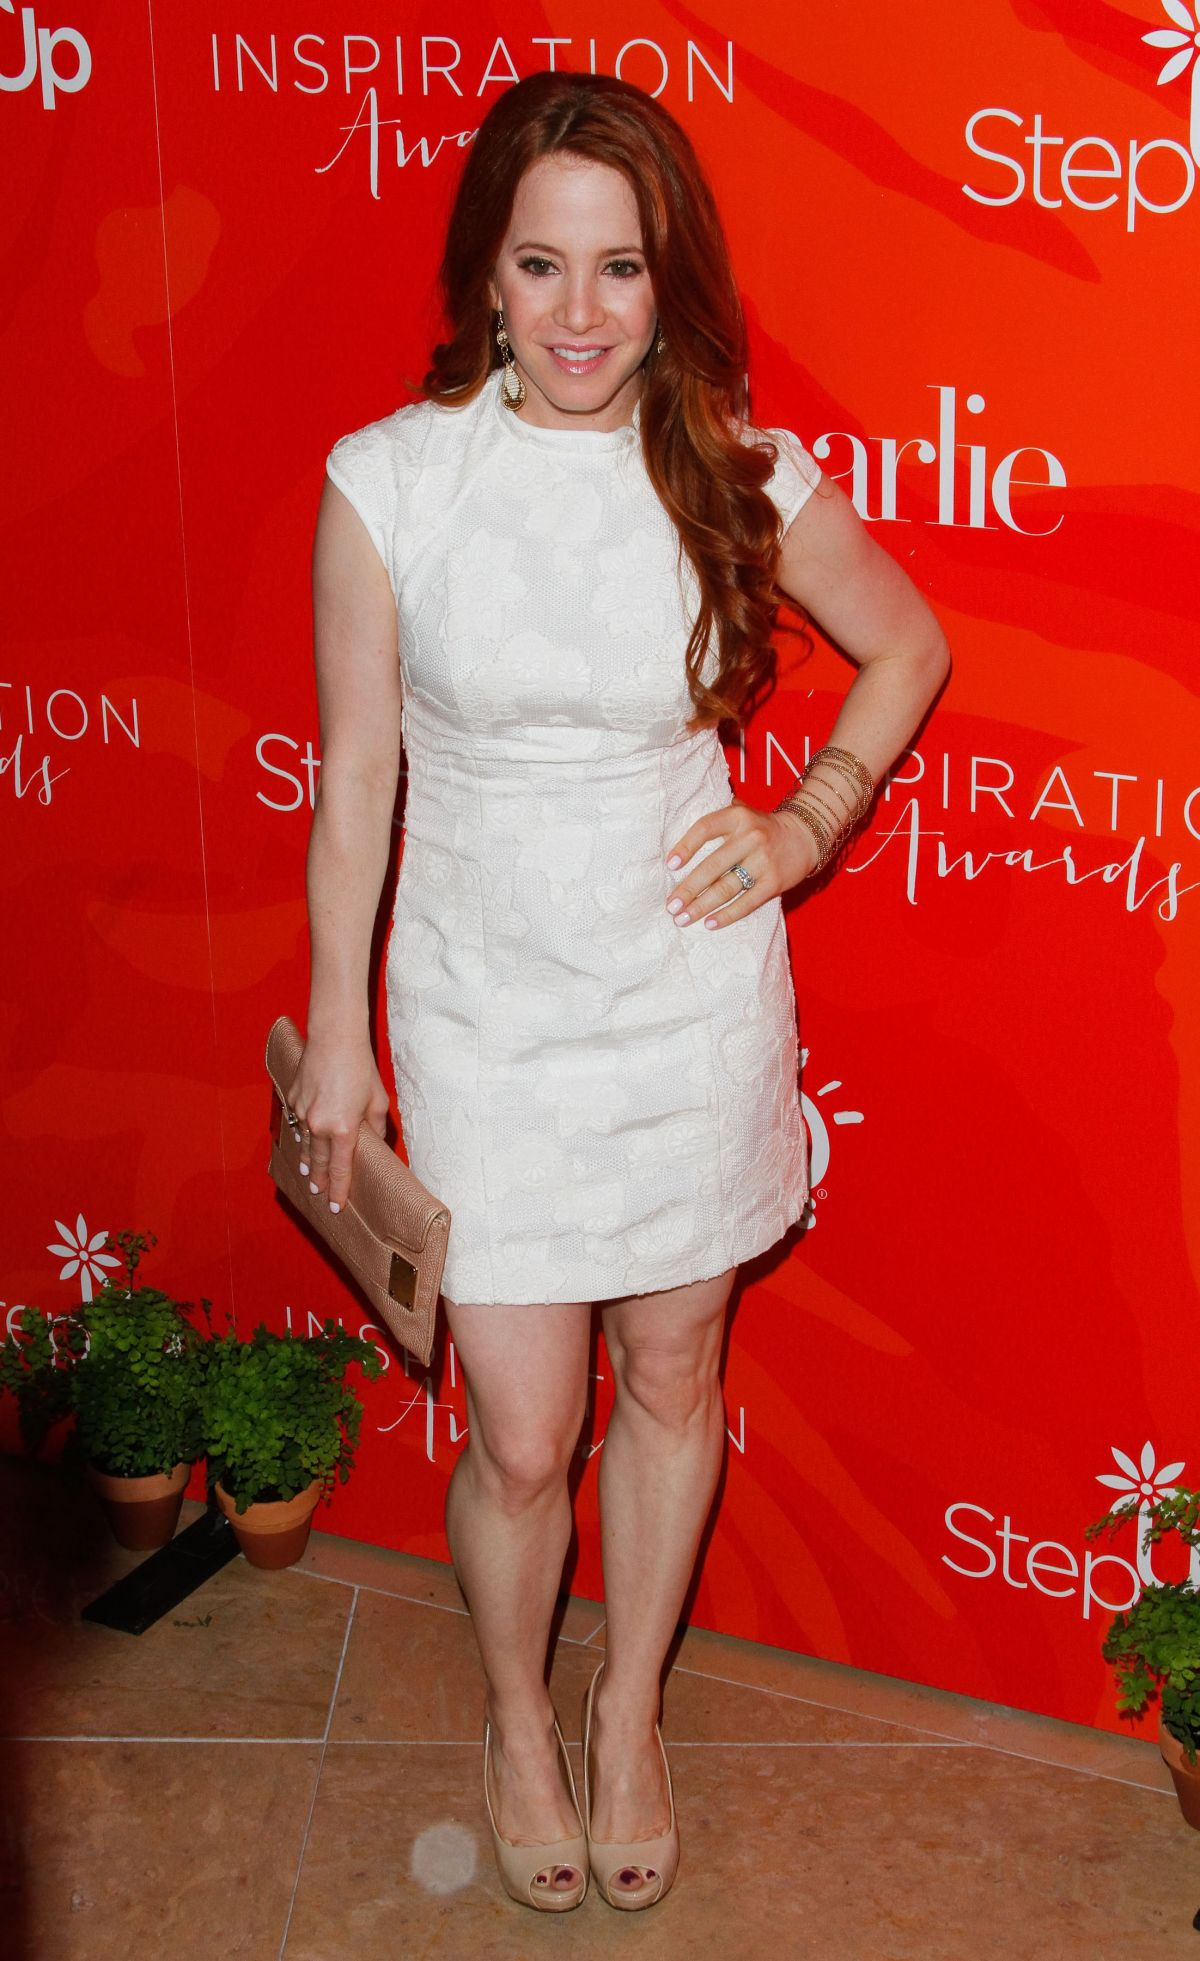 AMY DAVIDSON at 13th Annual Inspiration Awards to Benefit Step Up in Beverly Hills 05/20/2016